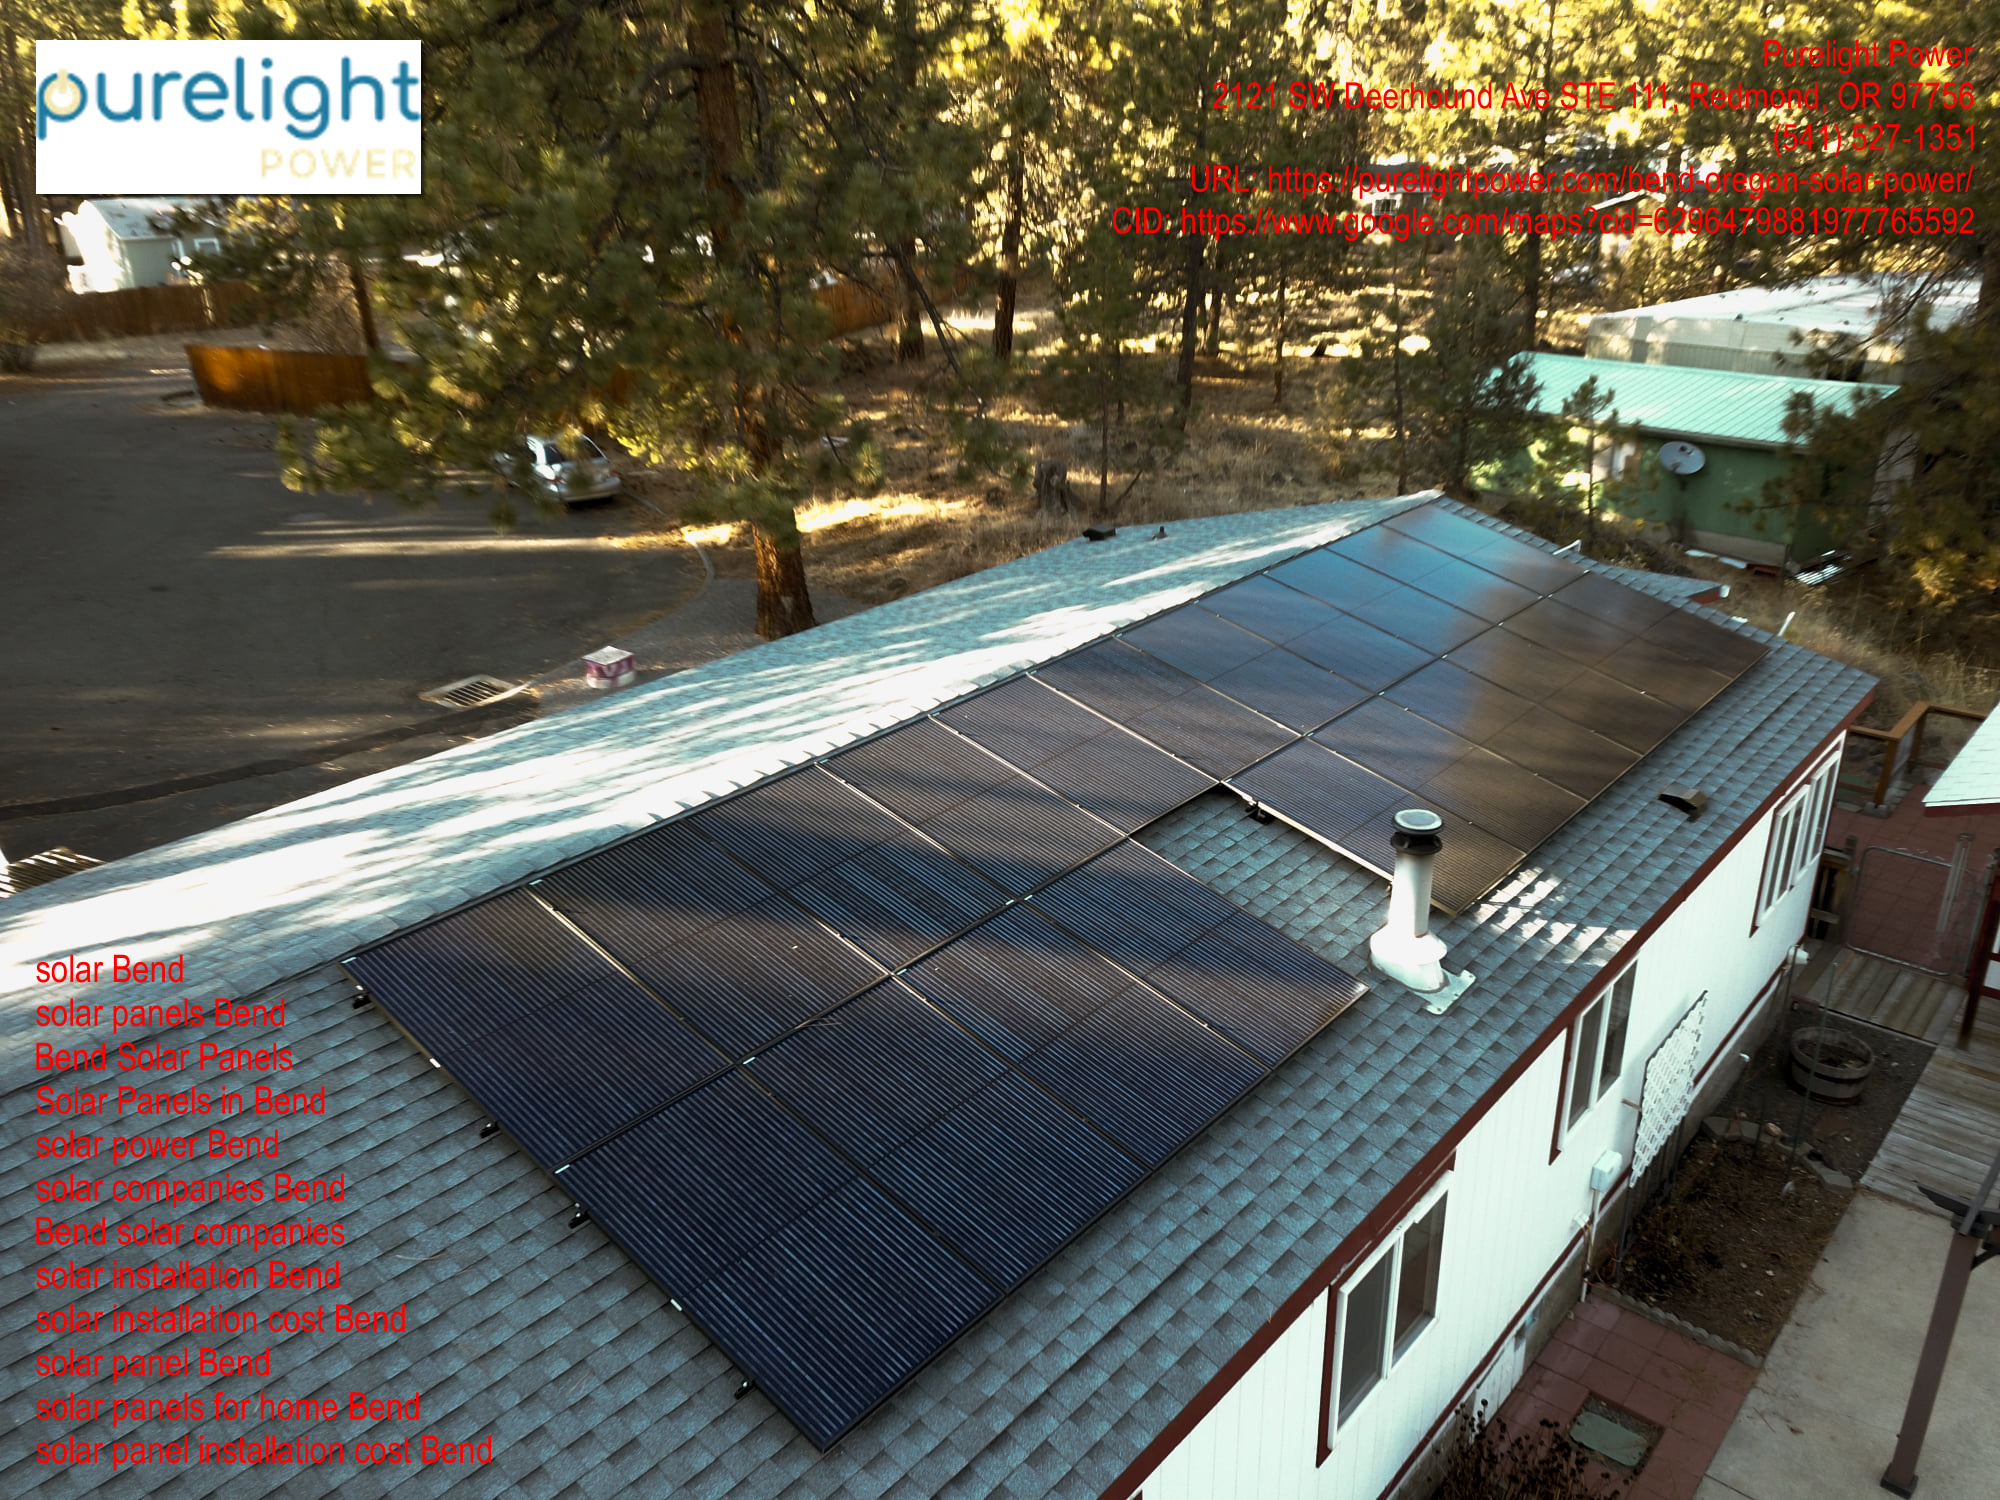 Purelight Power Give Tips On How To Select The Best Solar Power Companies In Bend